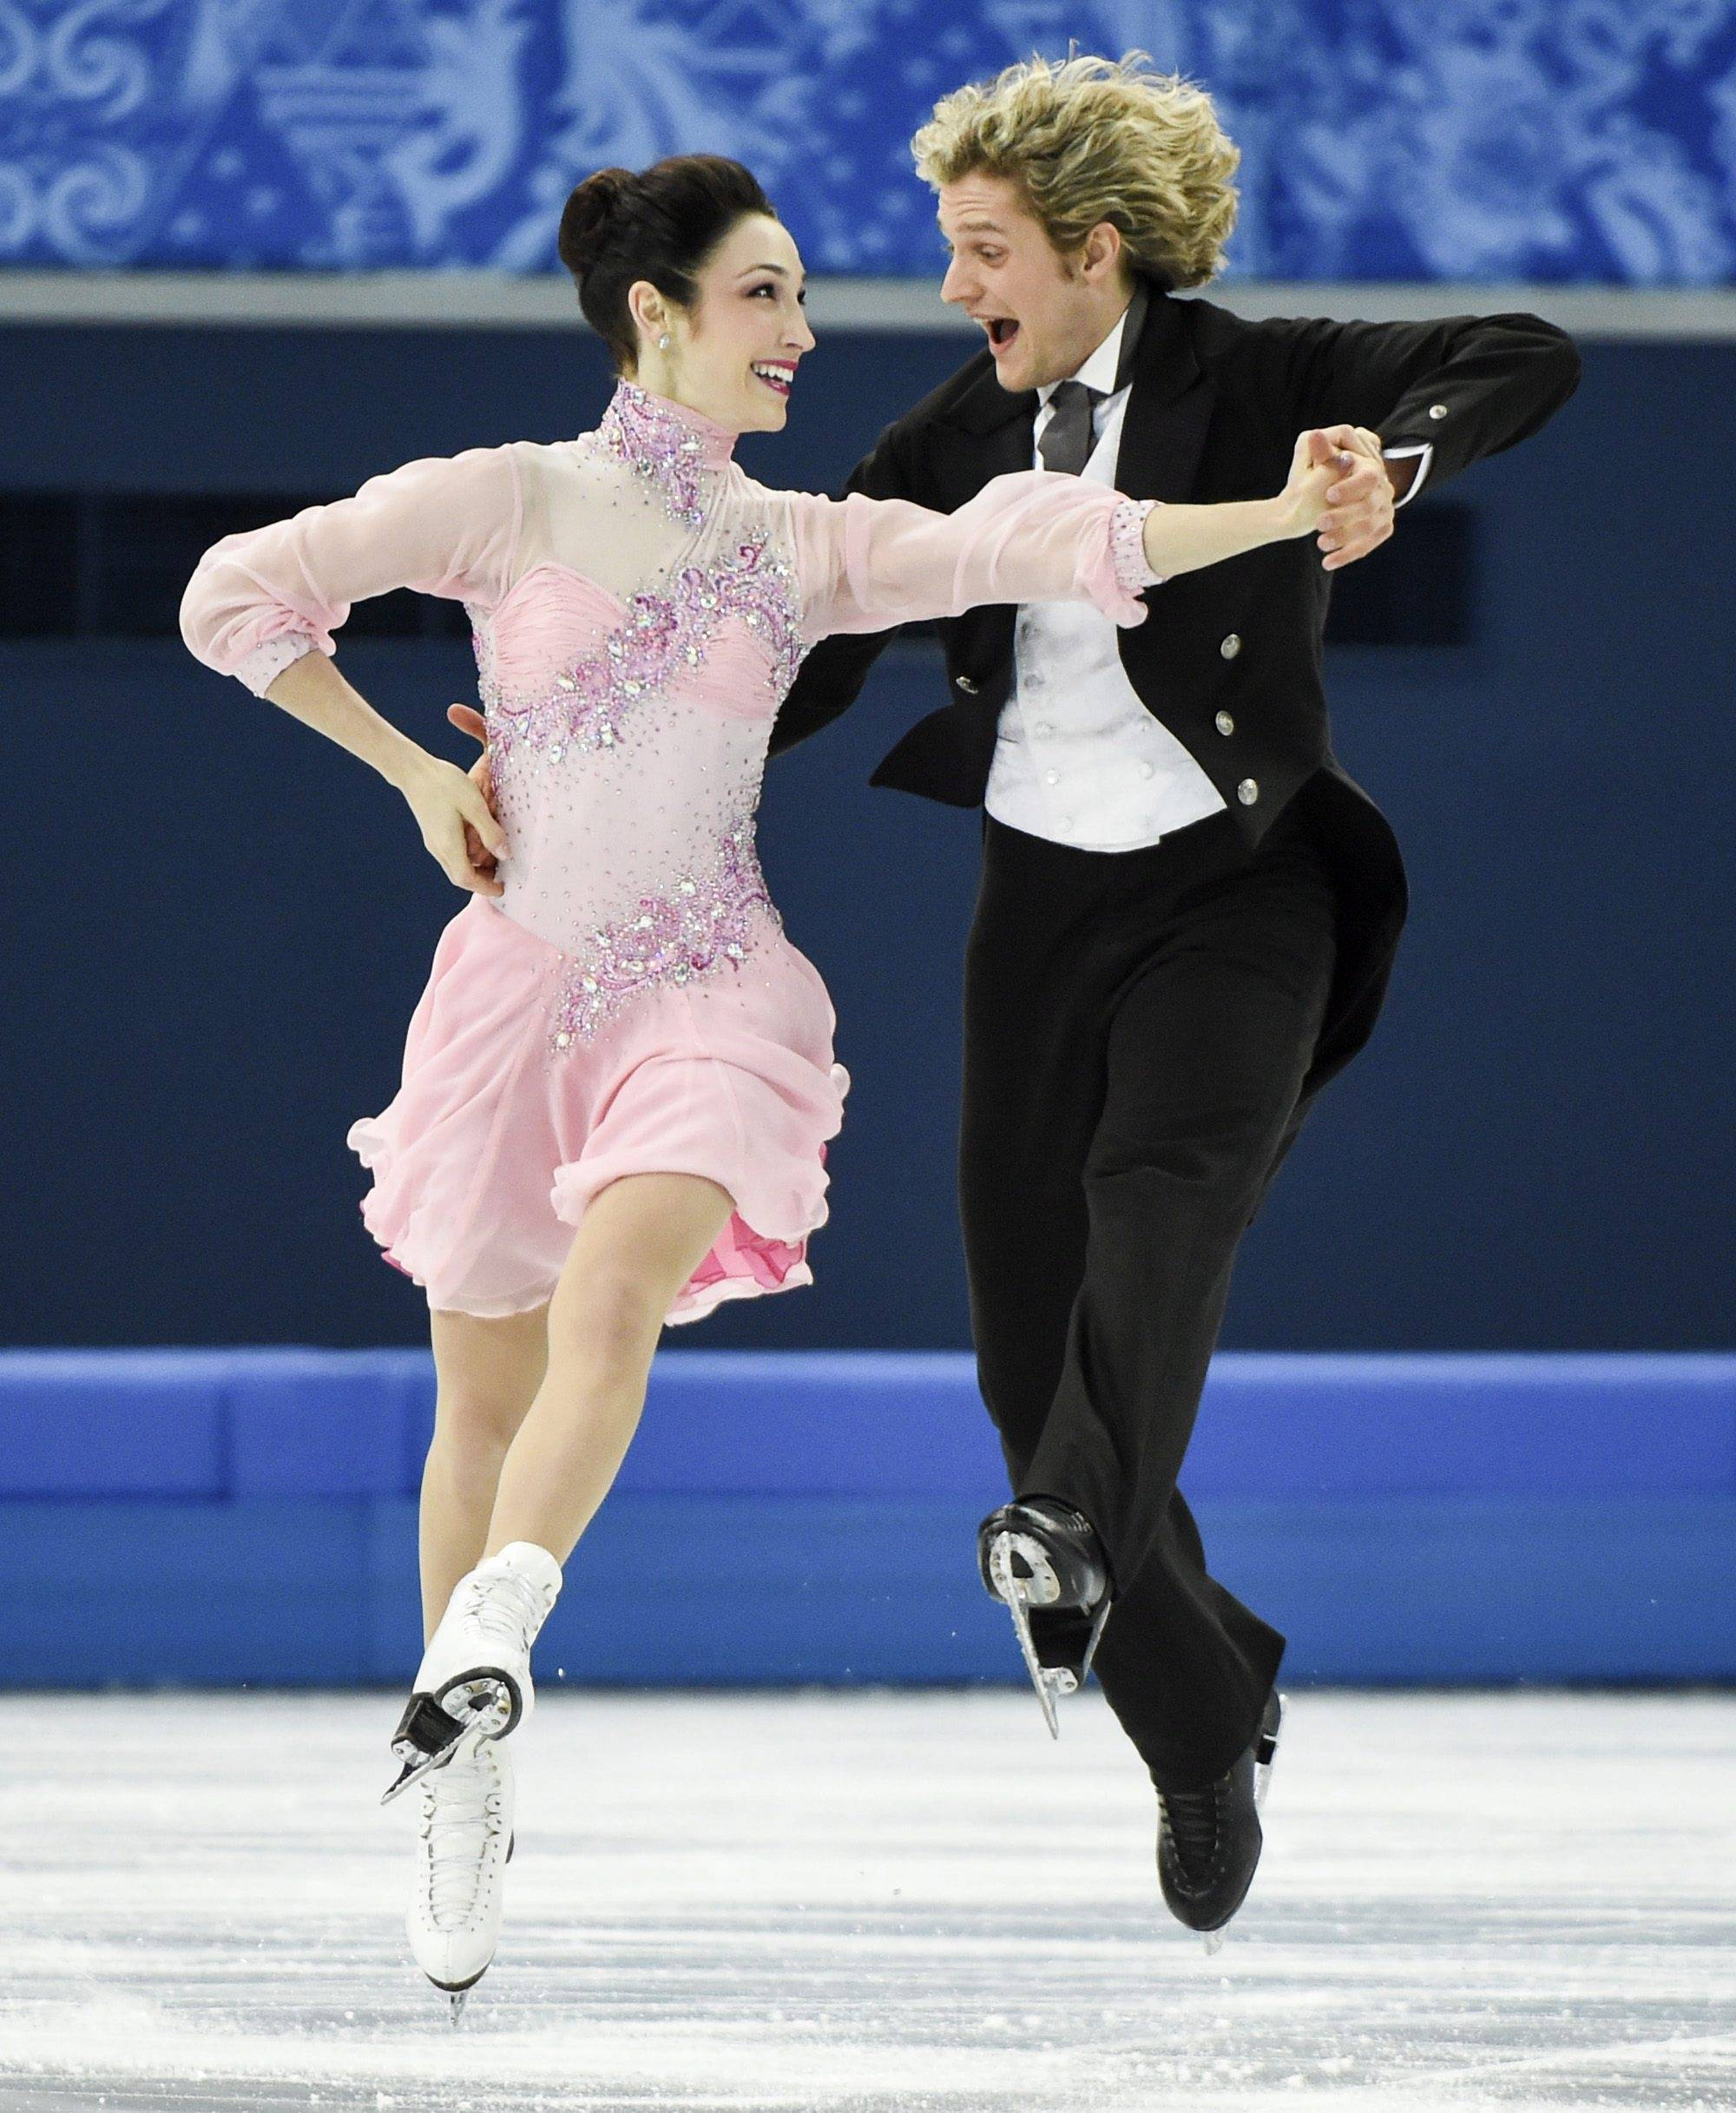 Olympic gold medalists Meryl Davis, left, and Charlie White, of the United States, were among the competitors at the 2013 Hilton HHonors Skate America. U.S. Figure Skating announced this week that it's chosen the Sears Centre in Hoffman Estates to host this year's Skate America, which is expected to bring 56 of the world's top figure skaters to the suburbs for a three-day competition Oct. 24-26.